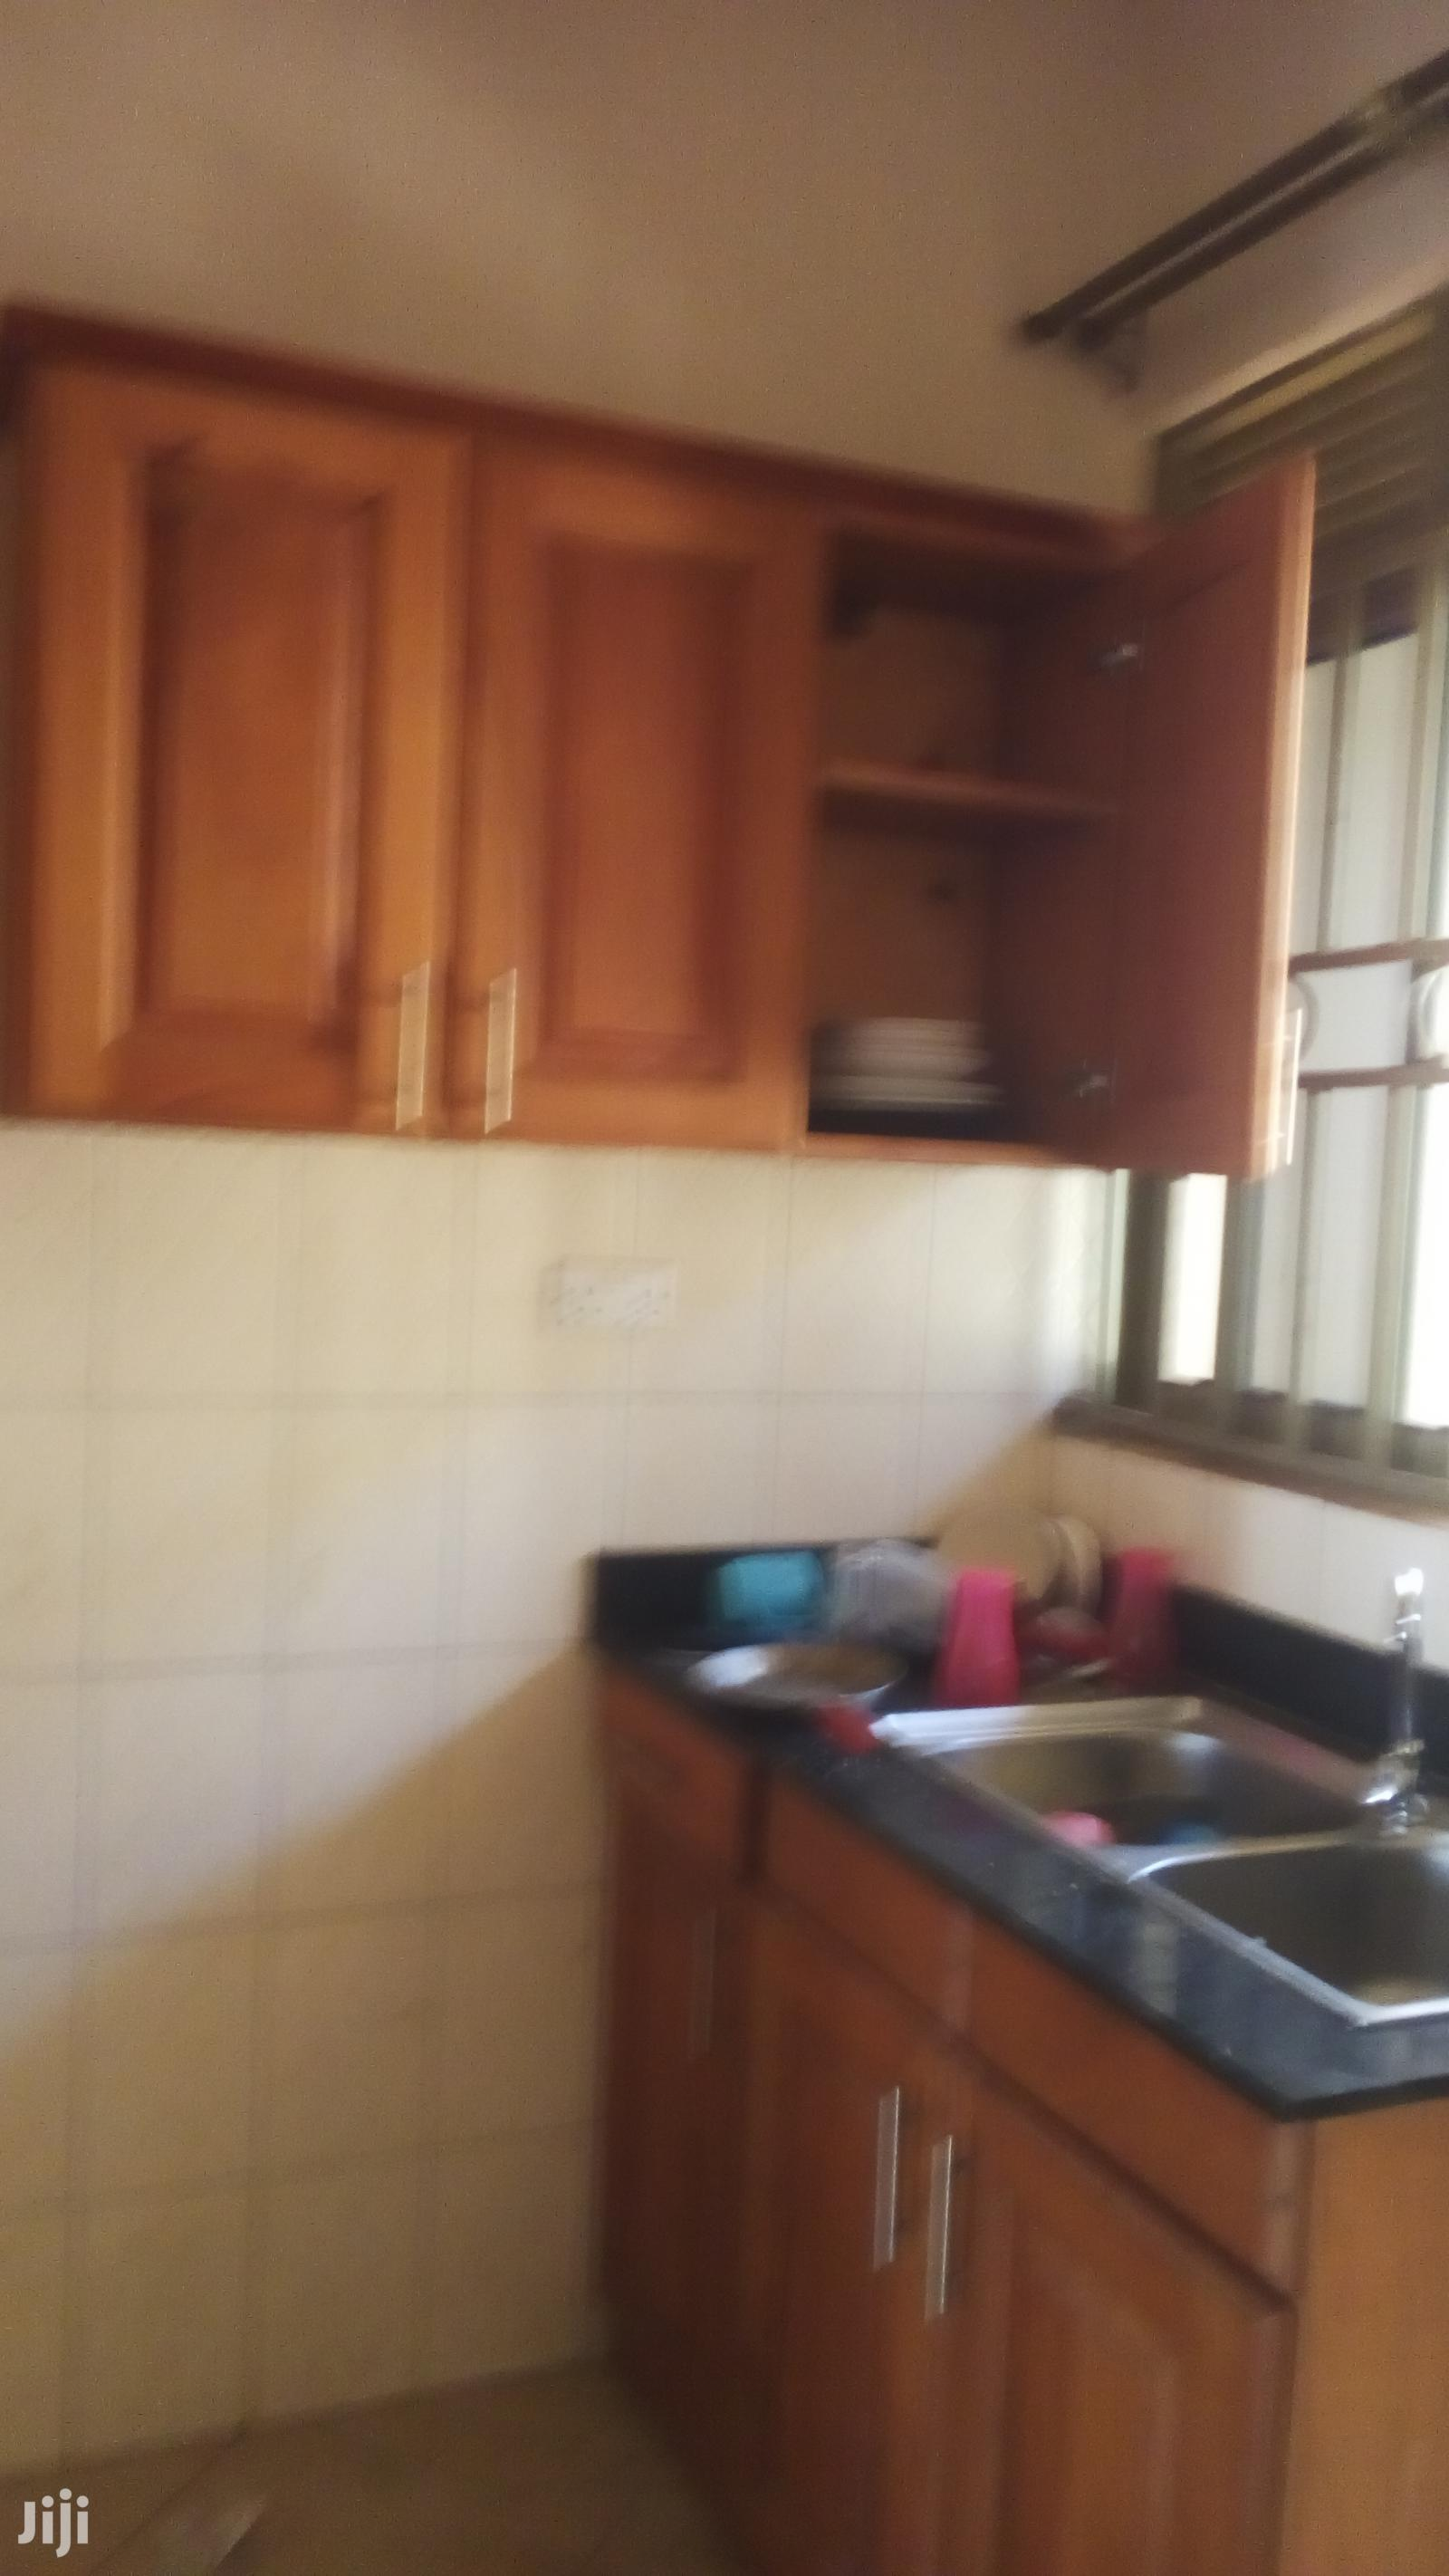 Finest 2bedroom House For Rent In Bweyogerere Self Contained | Houses & Apartments For Rent for sale in Kampala, Central Region, Uganda